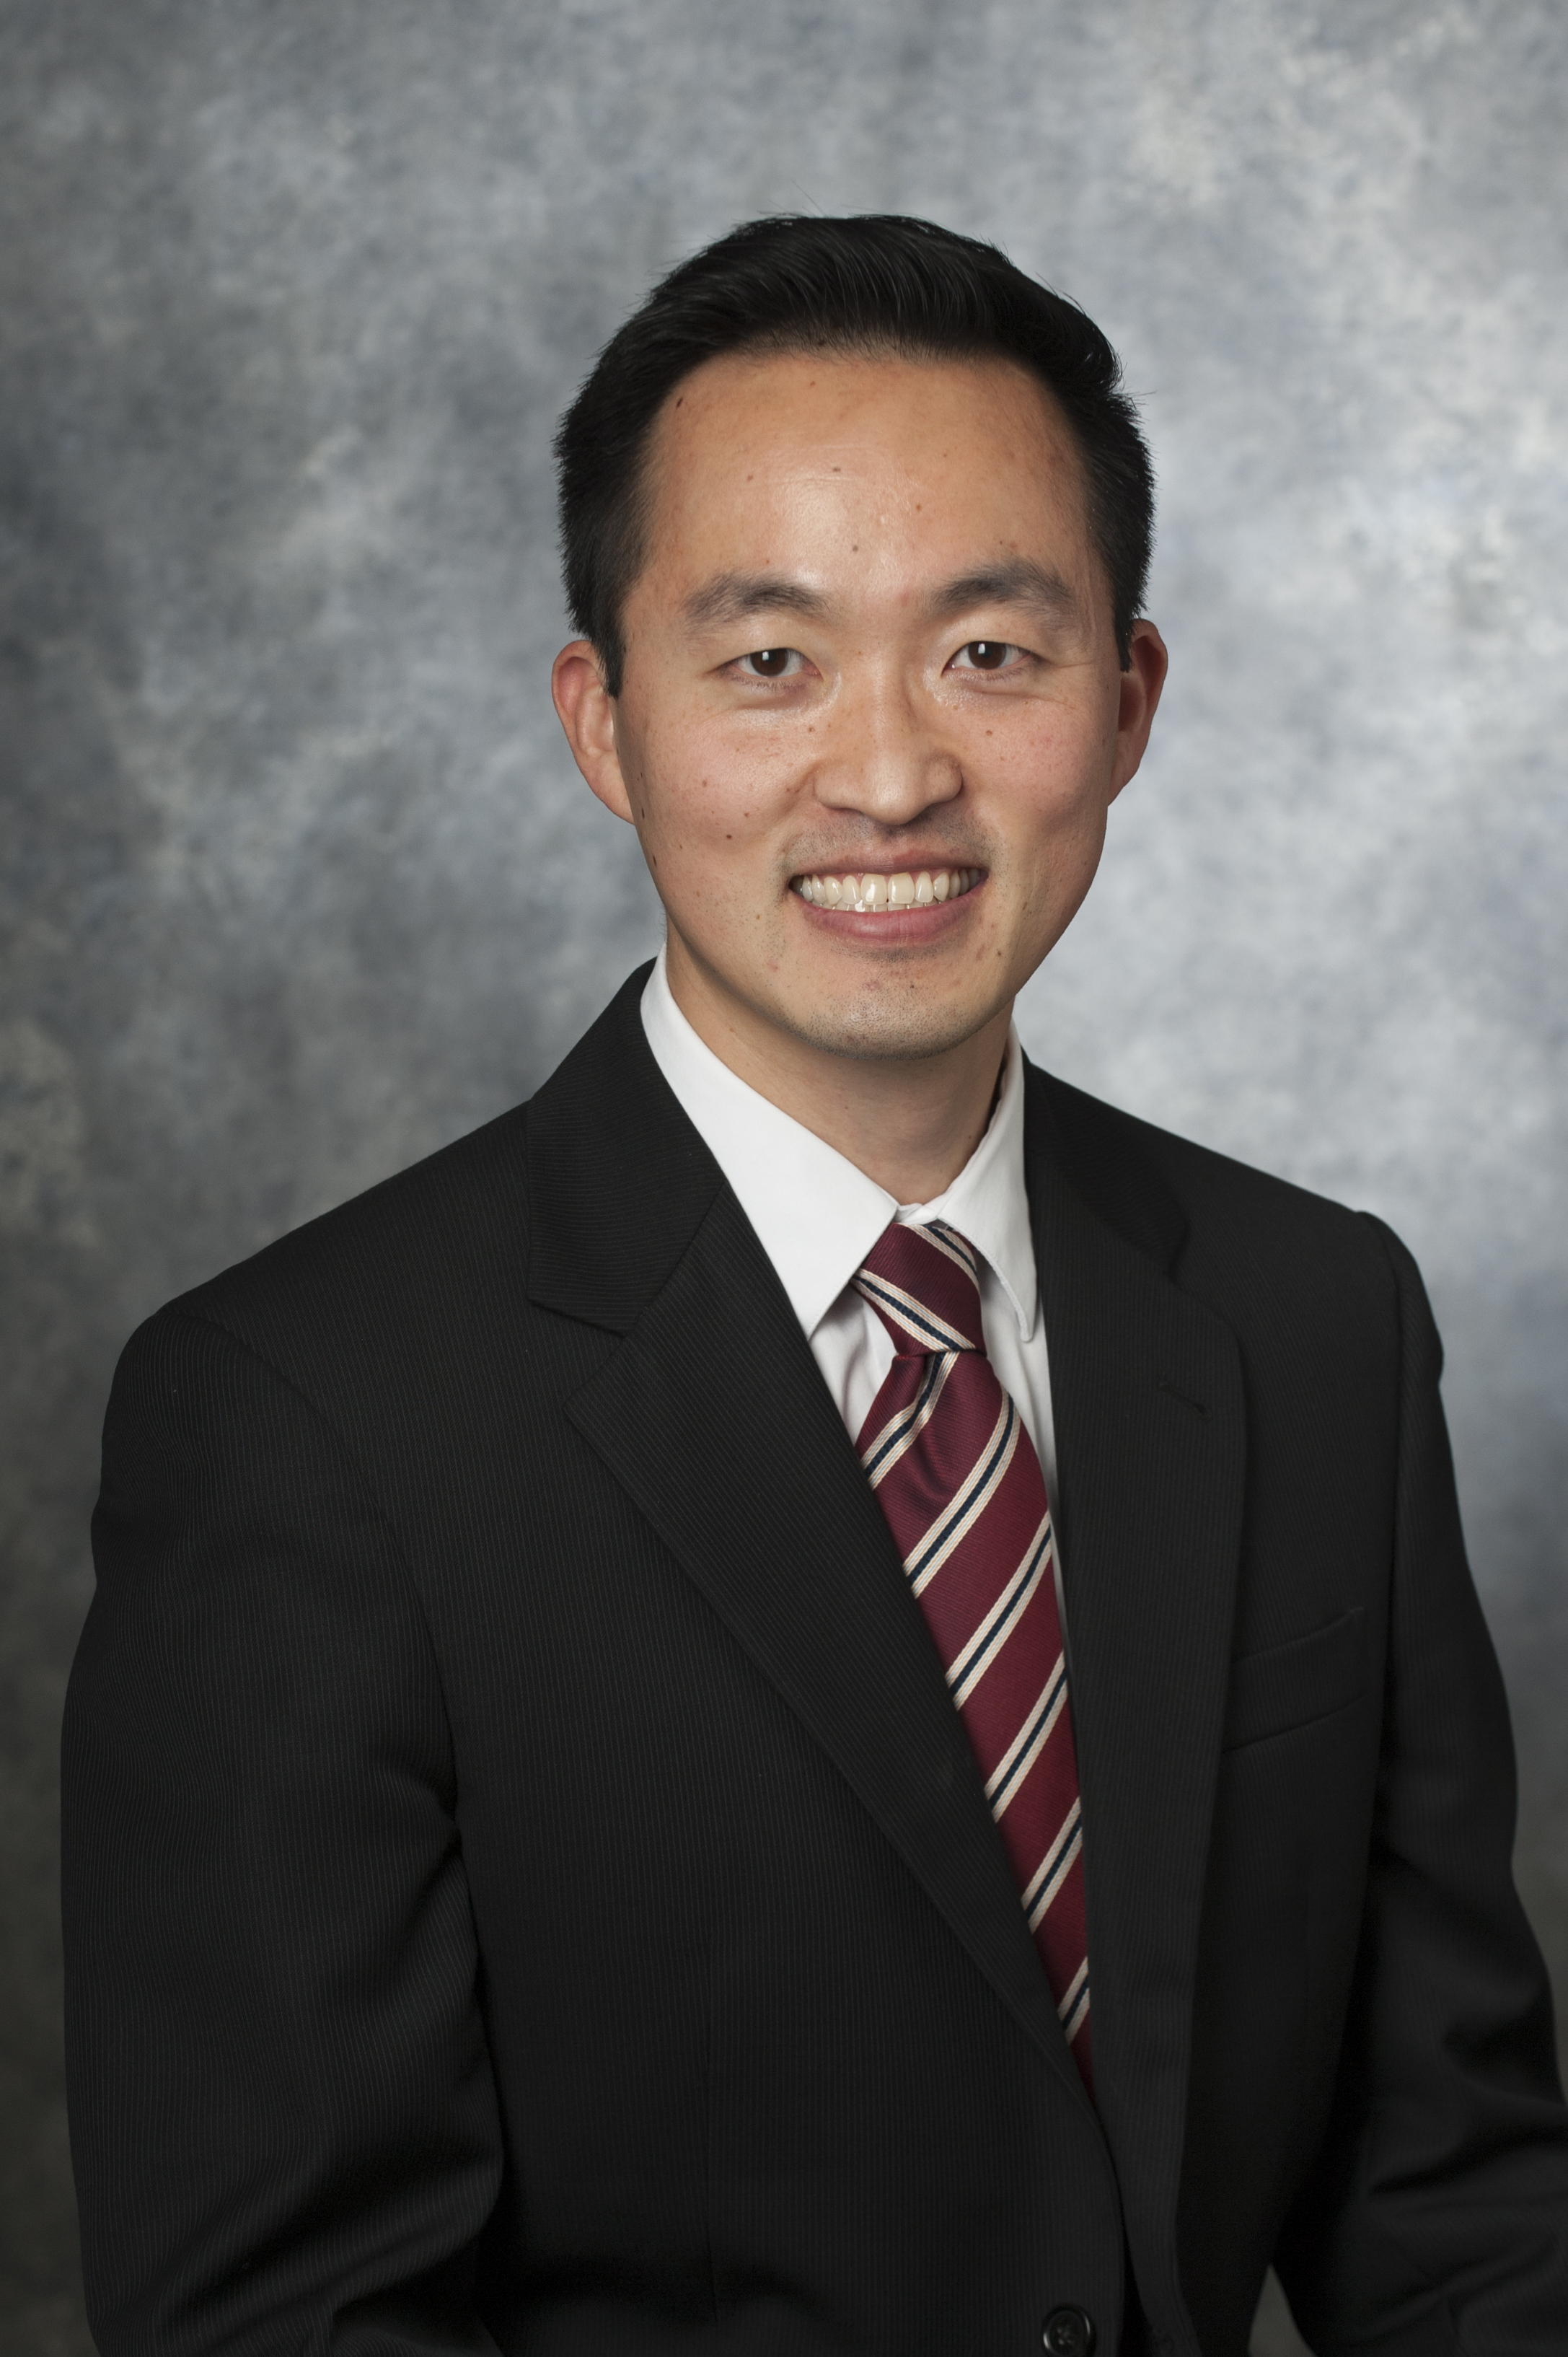 James Kang Hoon Lee (Jim Lee), Assistant Professor of the History of Early Christianity, Perkins School of Theology, Southern Methodist University (SMU)